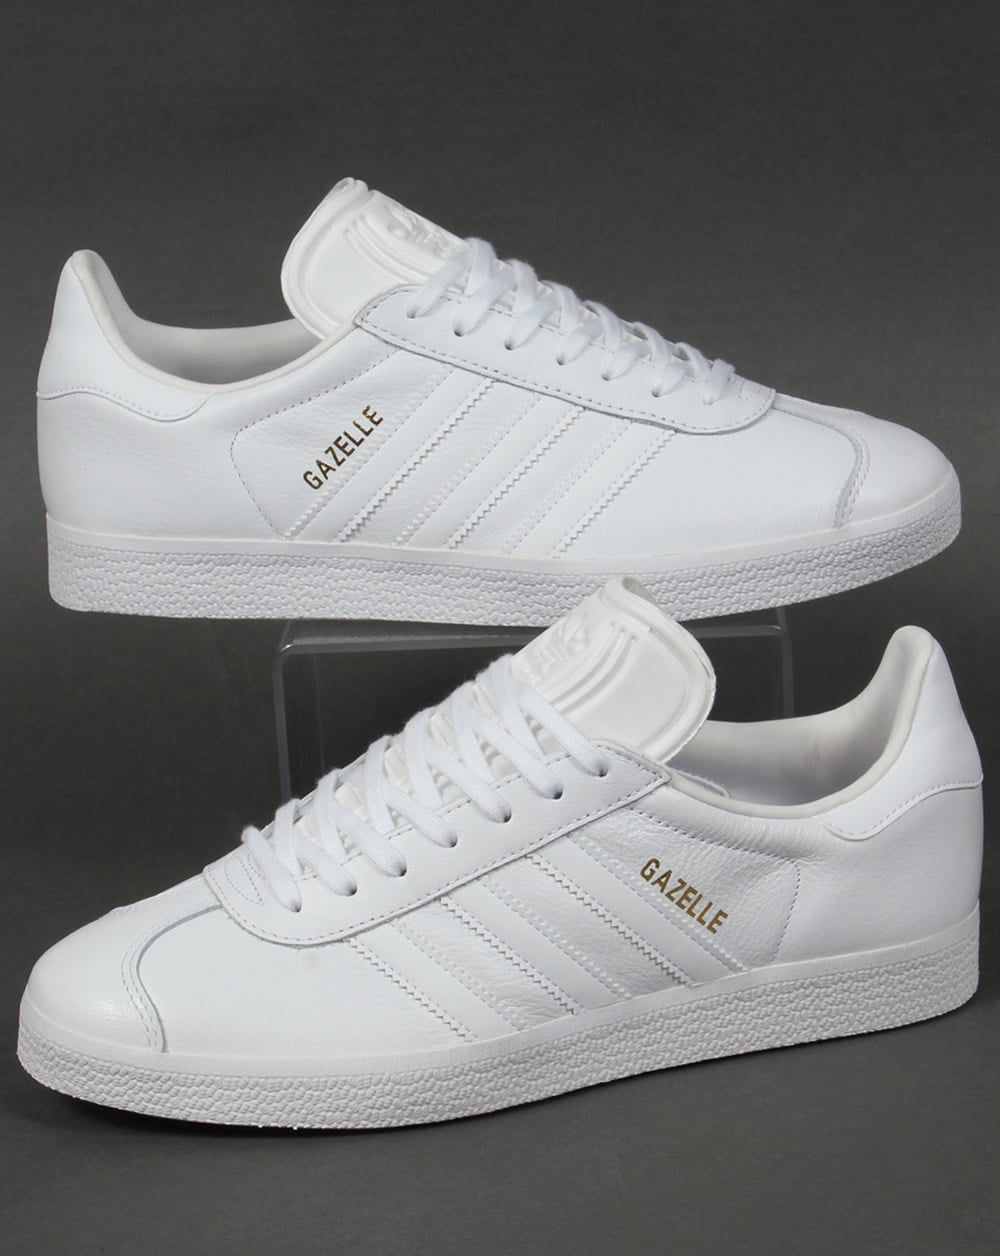 a5ad3827595 Adidas Gazelle Leather Trainers in White